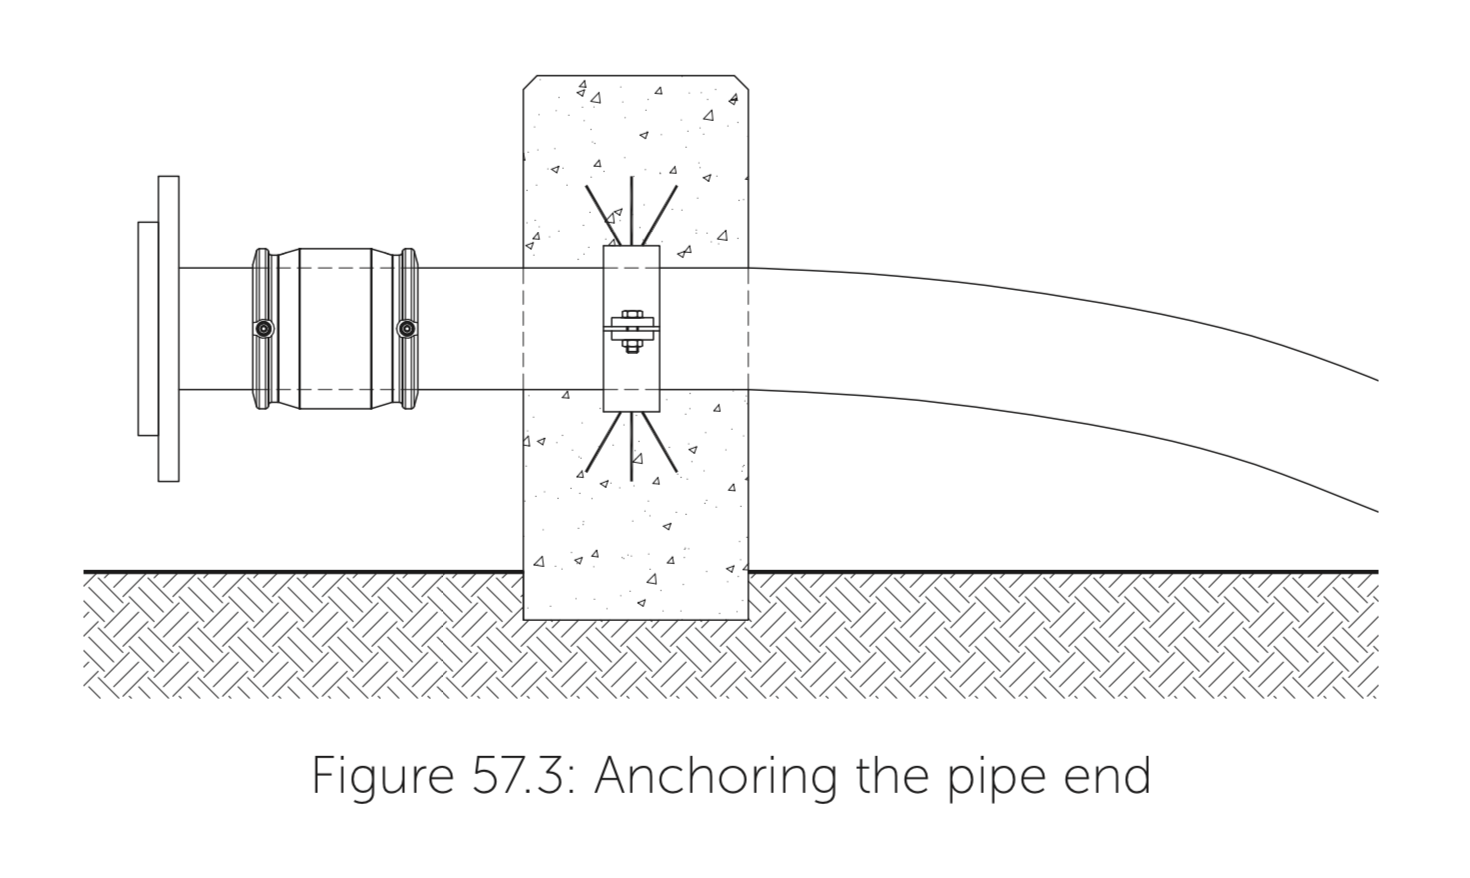 anchoring the pipe end